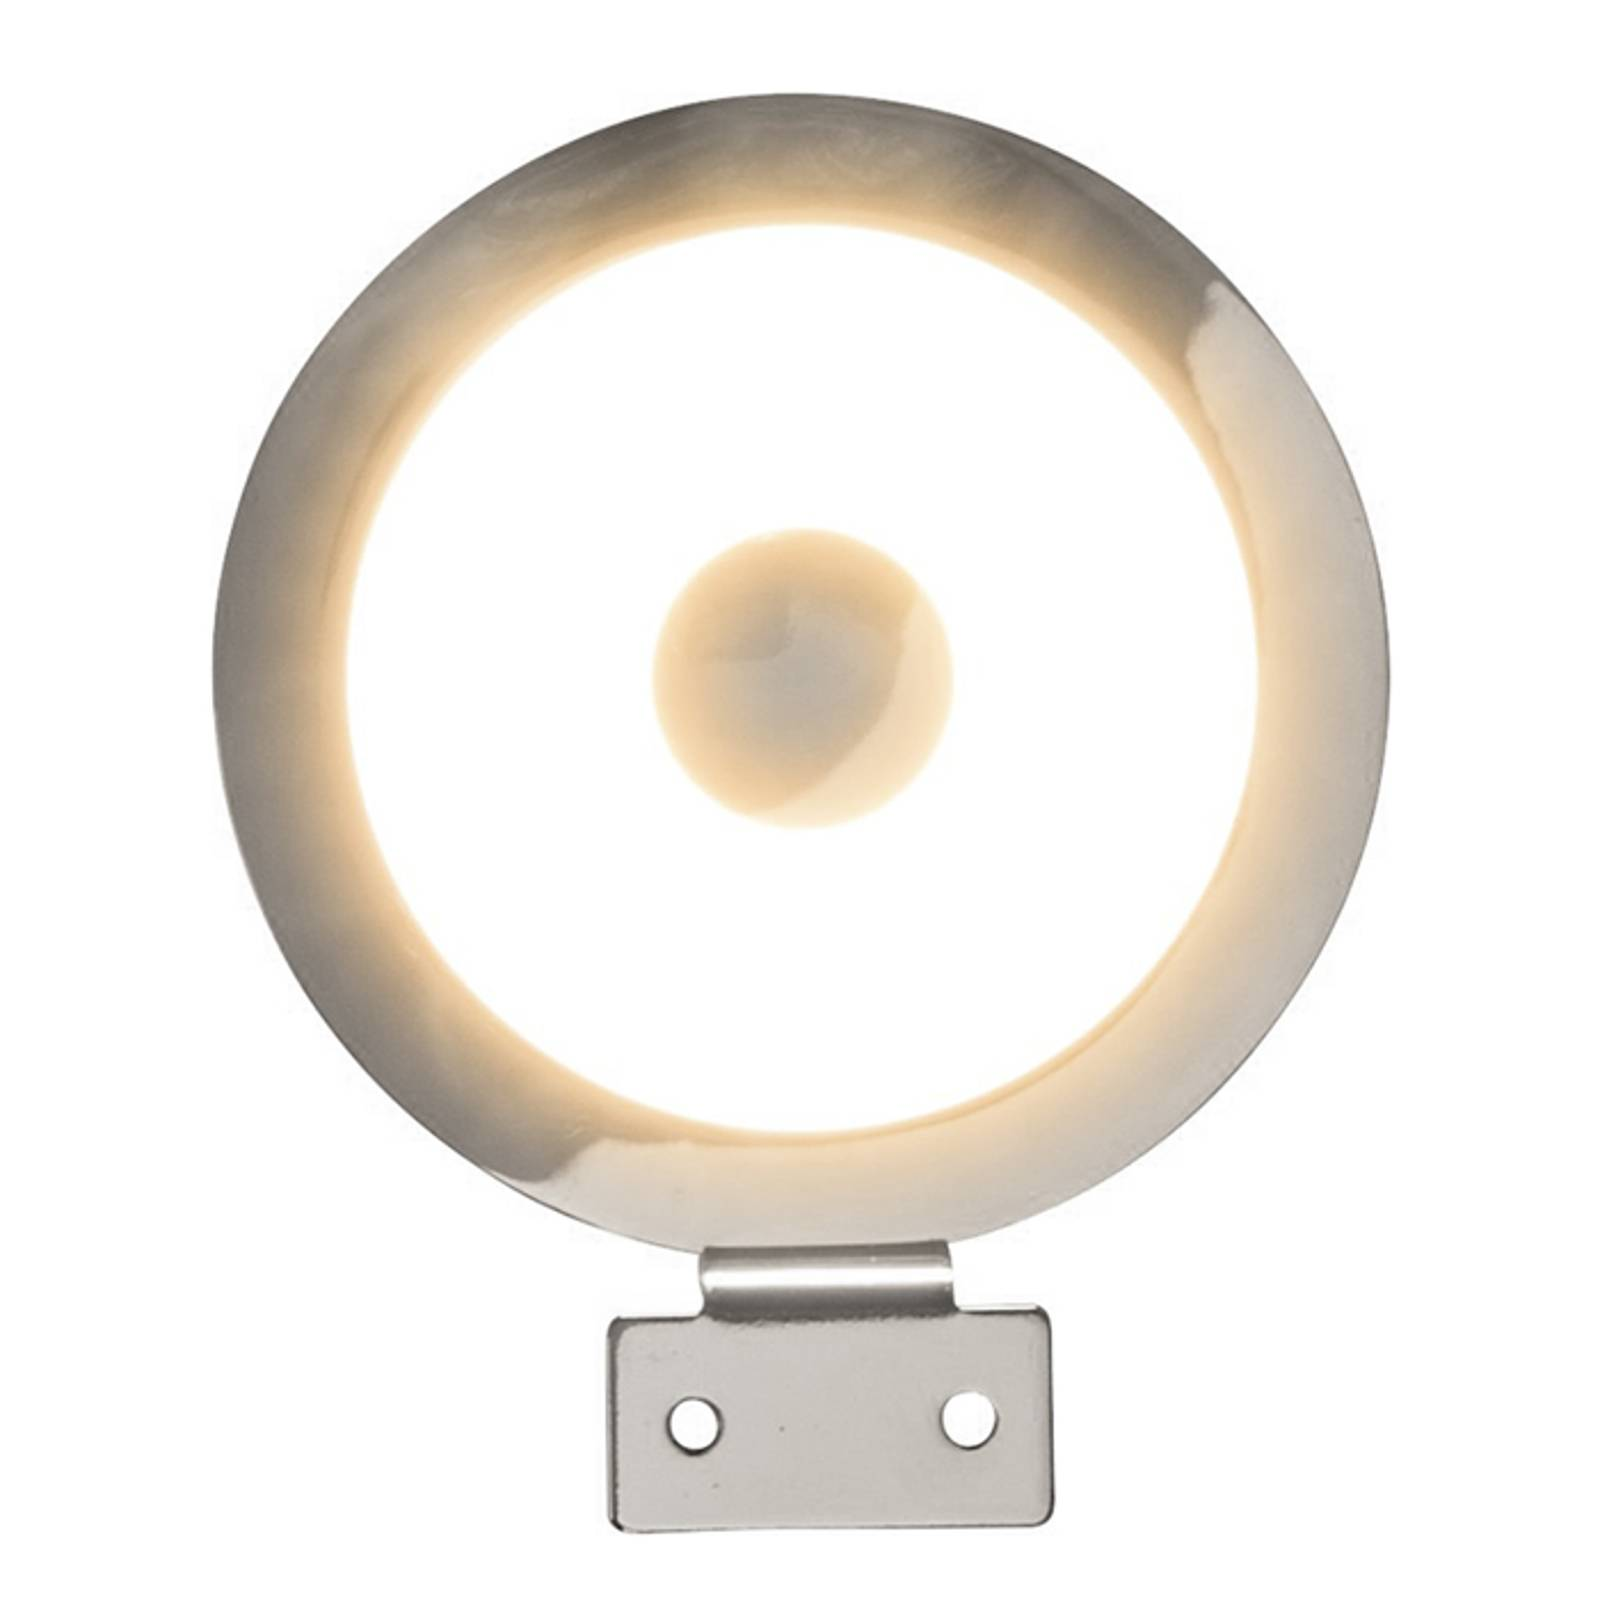 Round LED mirror light Tondo from Heitronic